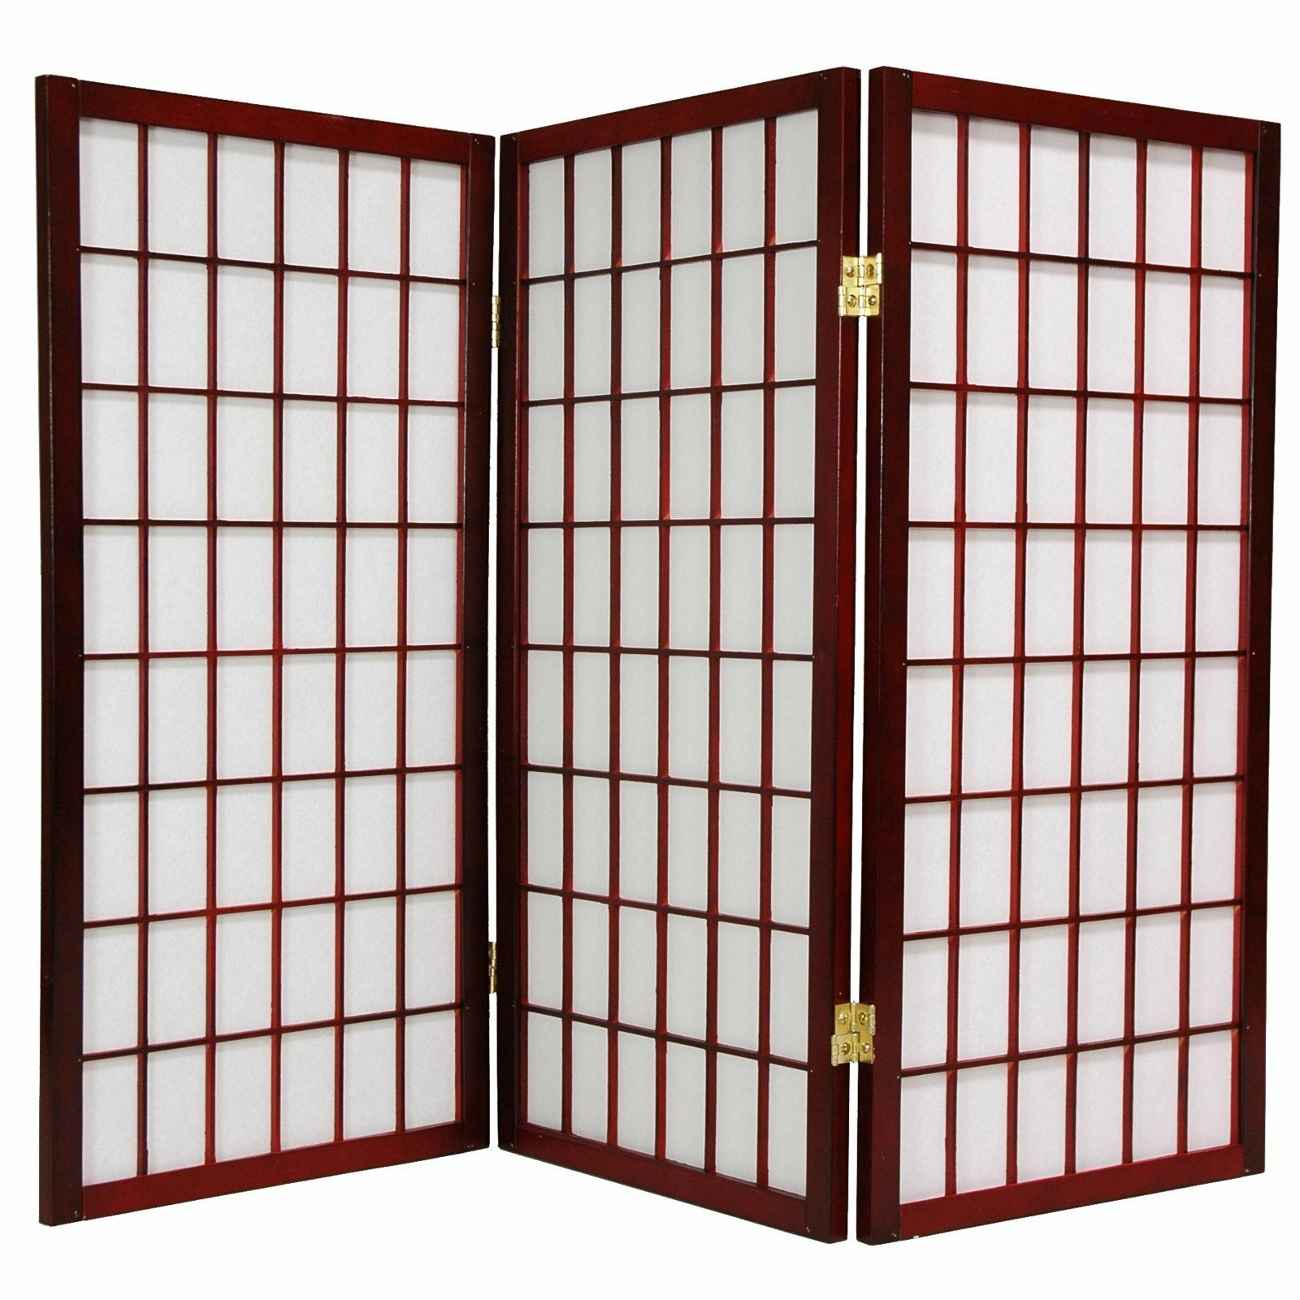 Japanese bamboo screen divider for home